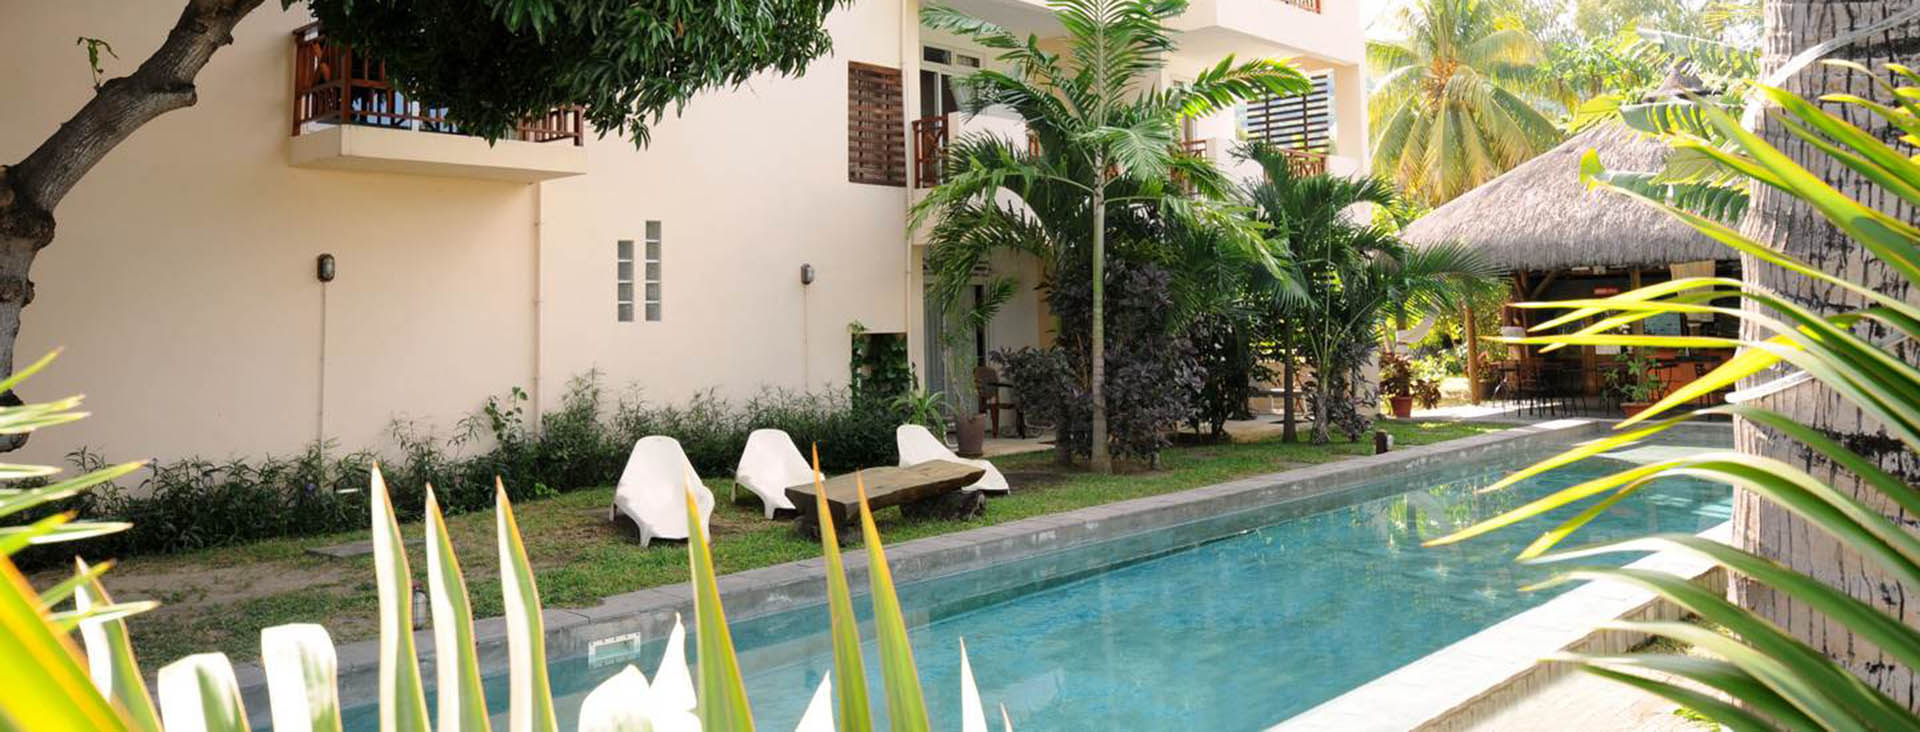 Holiday Rental Bed and Breakfast Mauritius